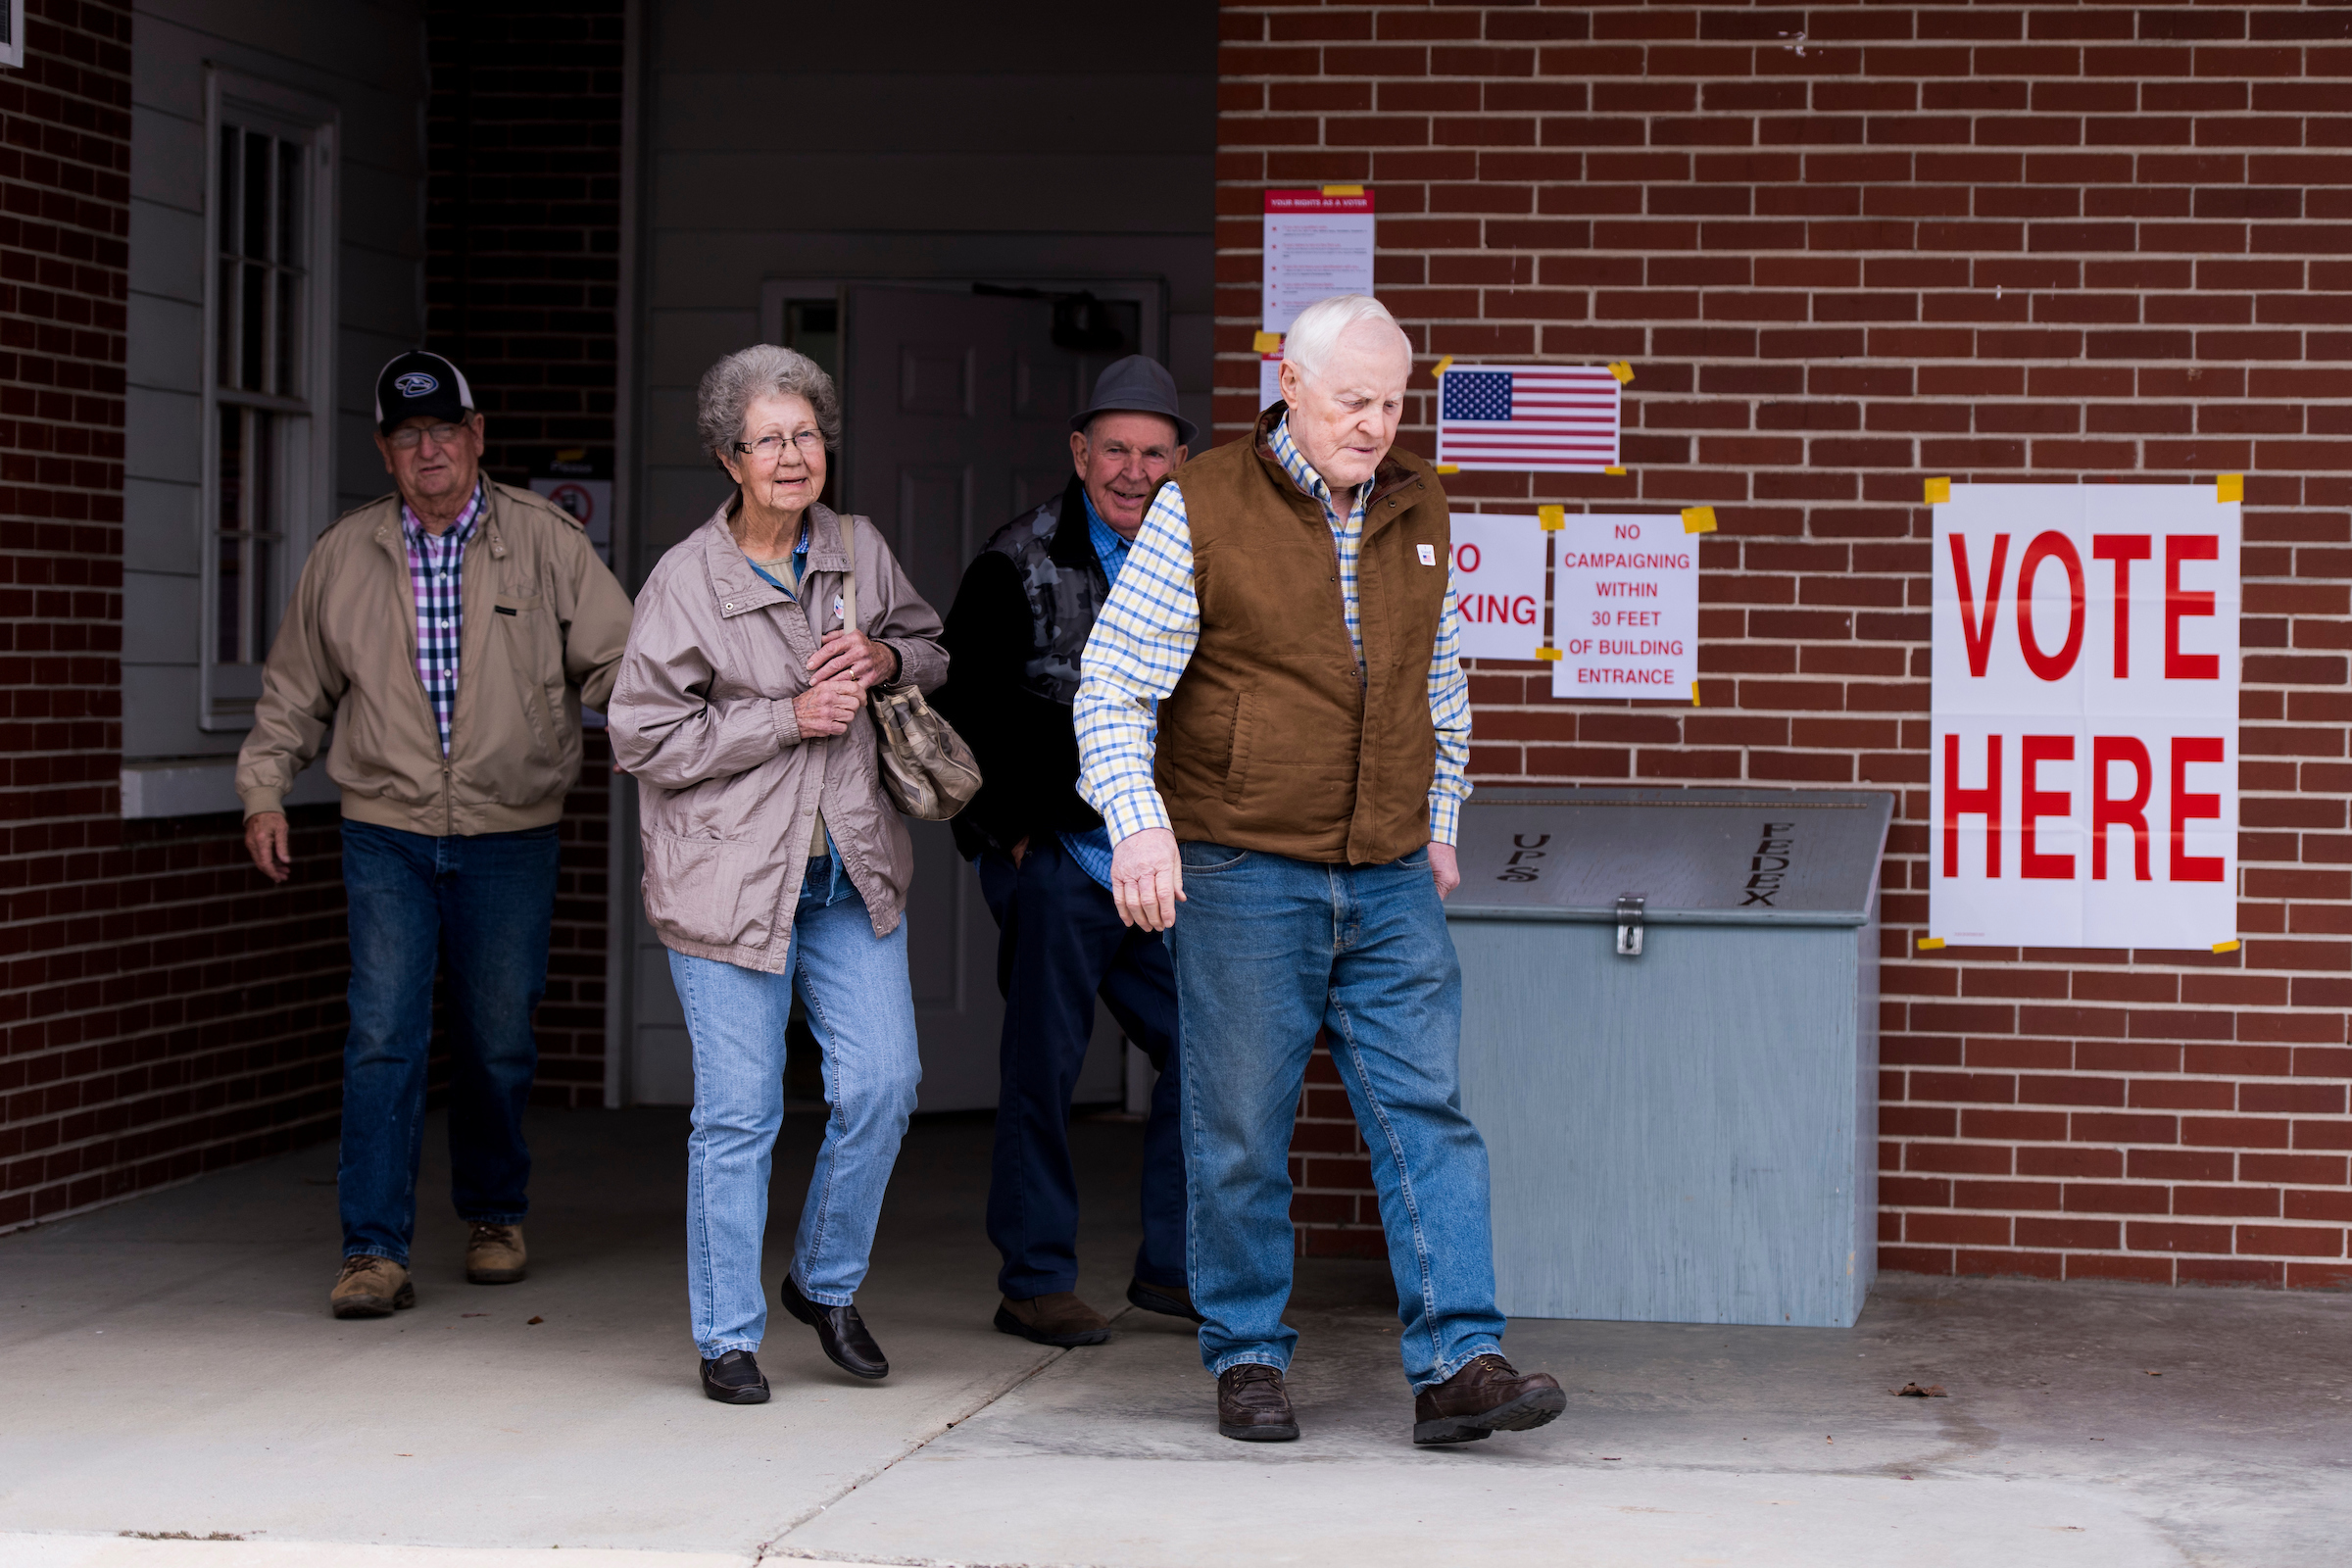 UNITED STATES - DECEMBER 12: Voters leave the Gallant Volunteer Fire Department in Gallant, Ala., after voting in the Alabama U.S. Senate special election on Tuesday, Dec. 12, 2017. The polling station is where Judge Roy Moore votes. (Photo By Bill Clark/CQ Roll Call)